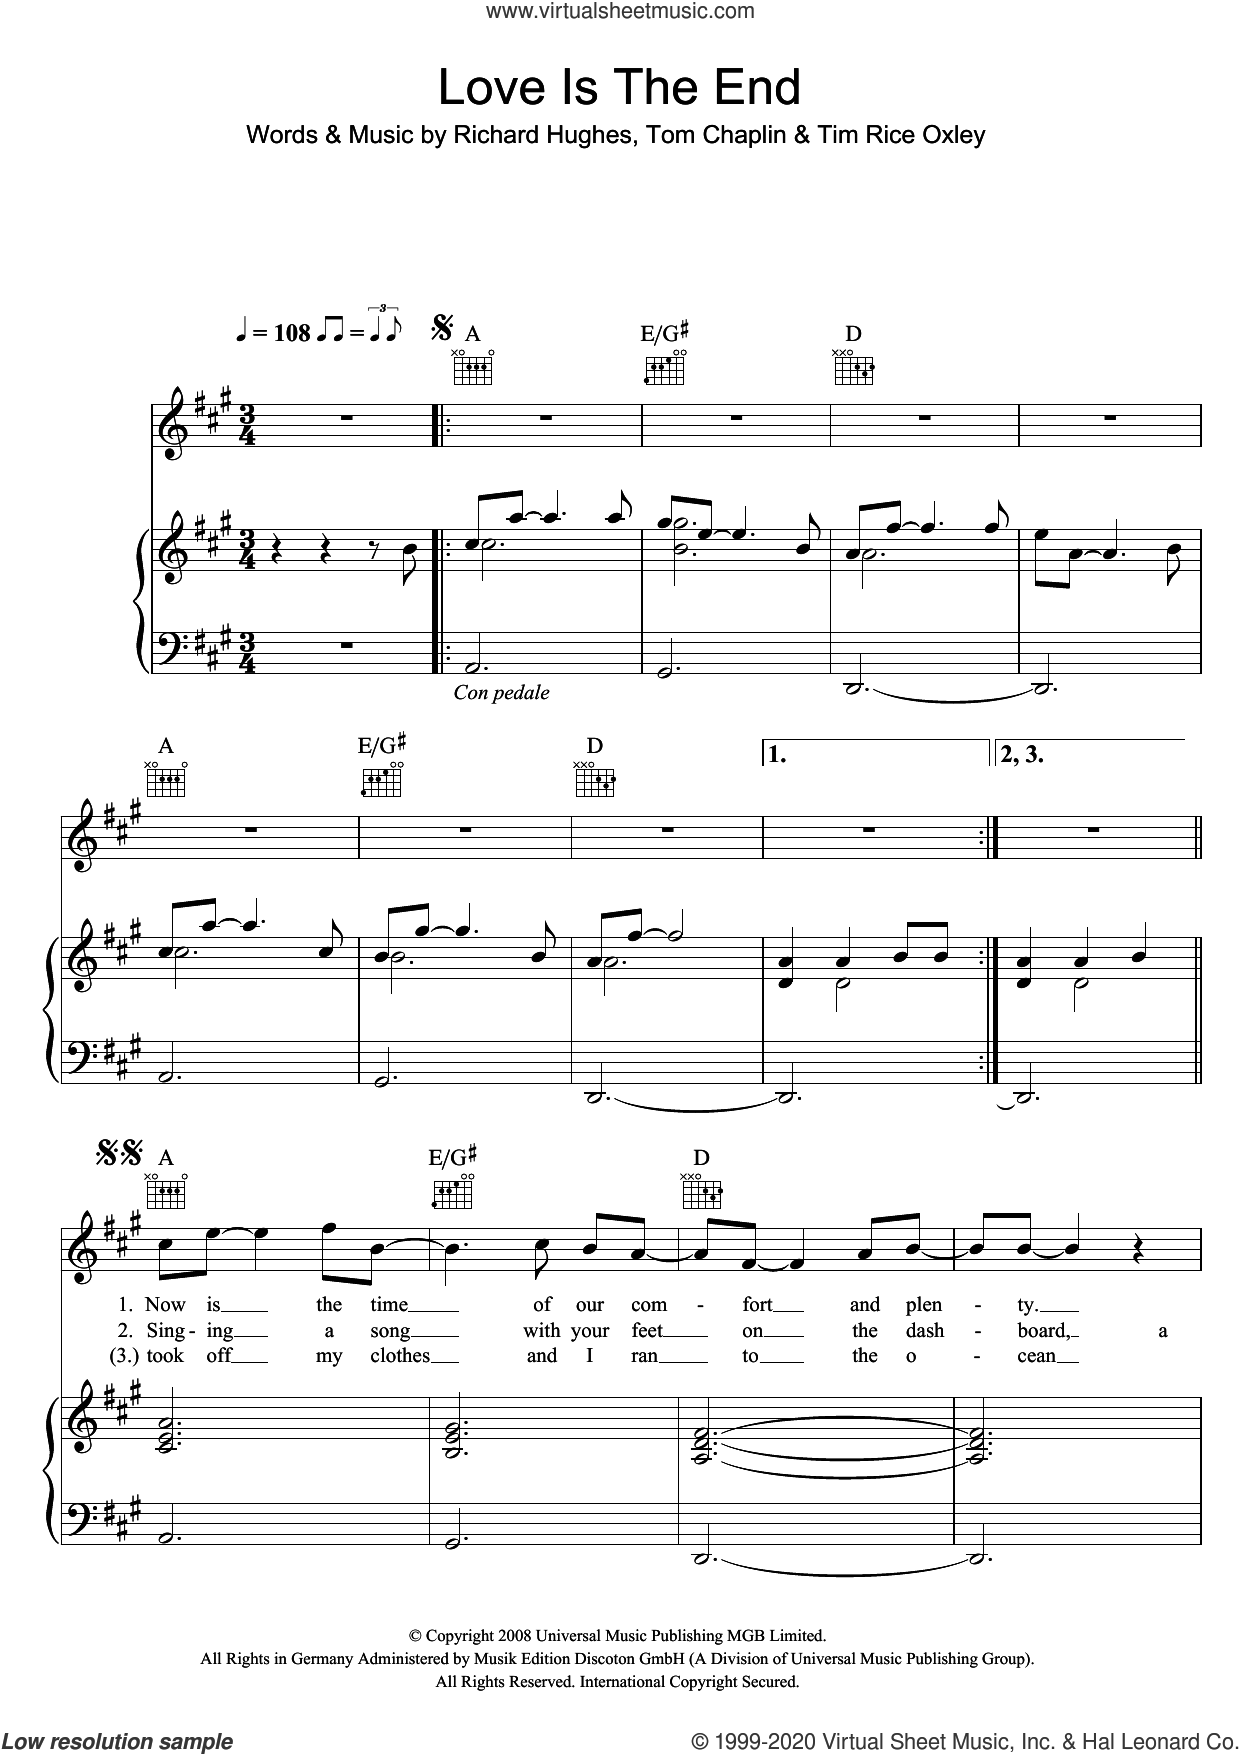 Love Is The End sheet music for voice, piano or guitar by Tim Rice-Oxley, Richard Hughes and Tom Chaplin, intermediate skill level